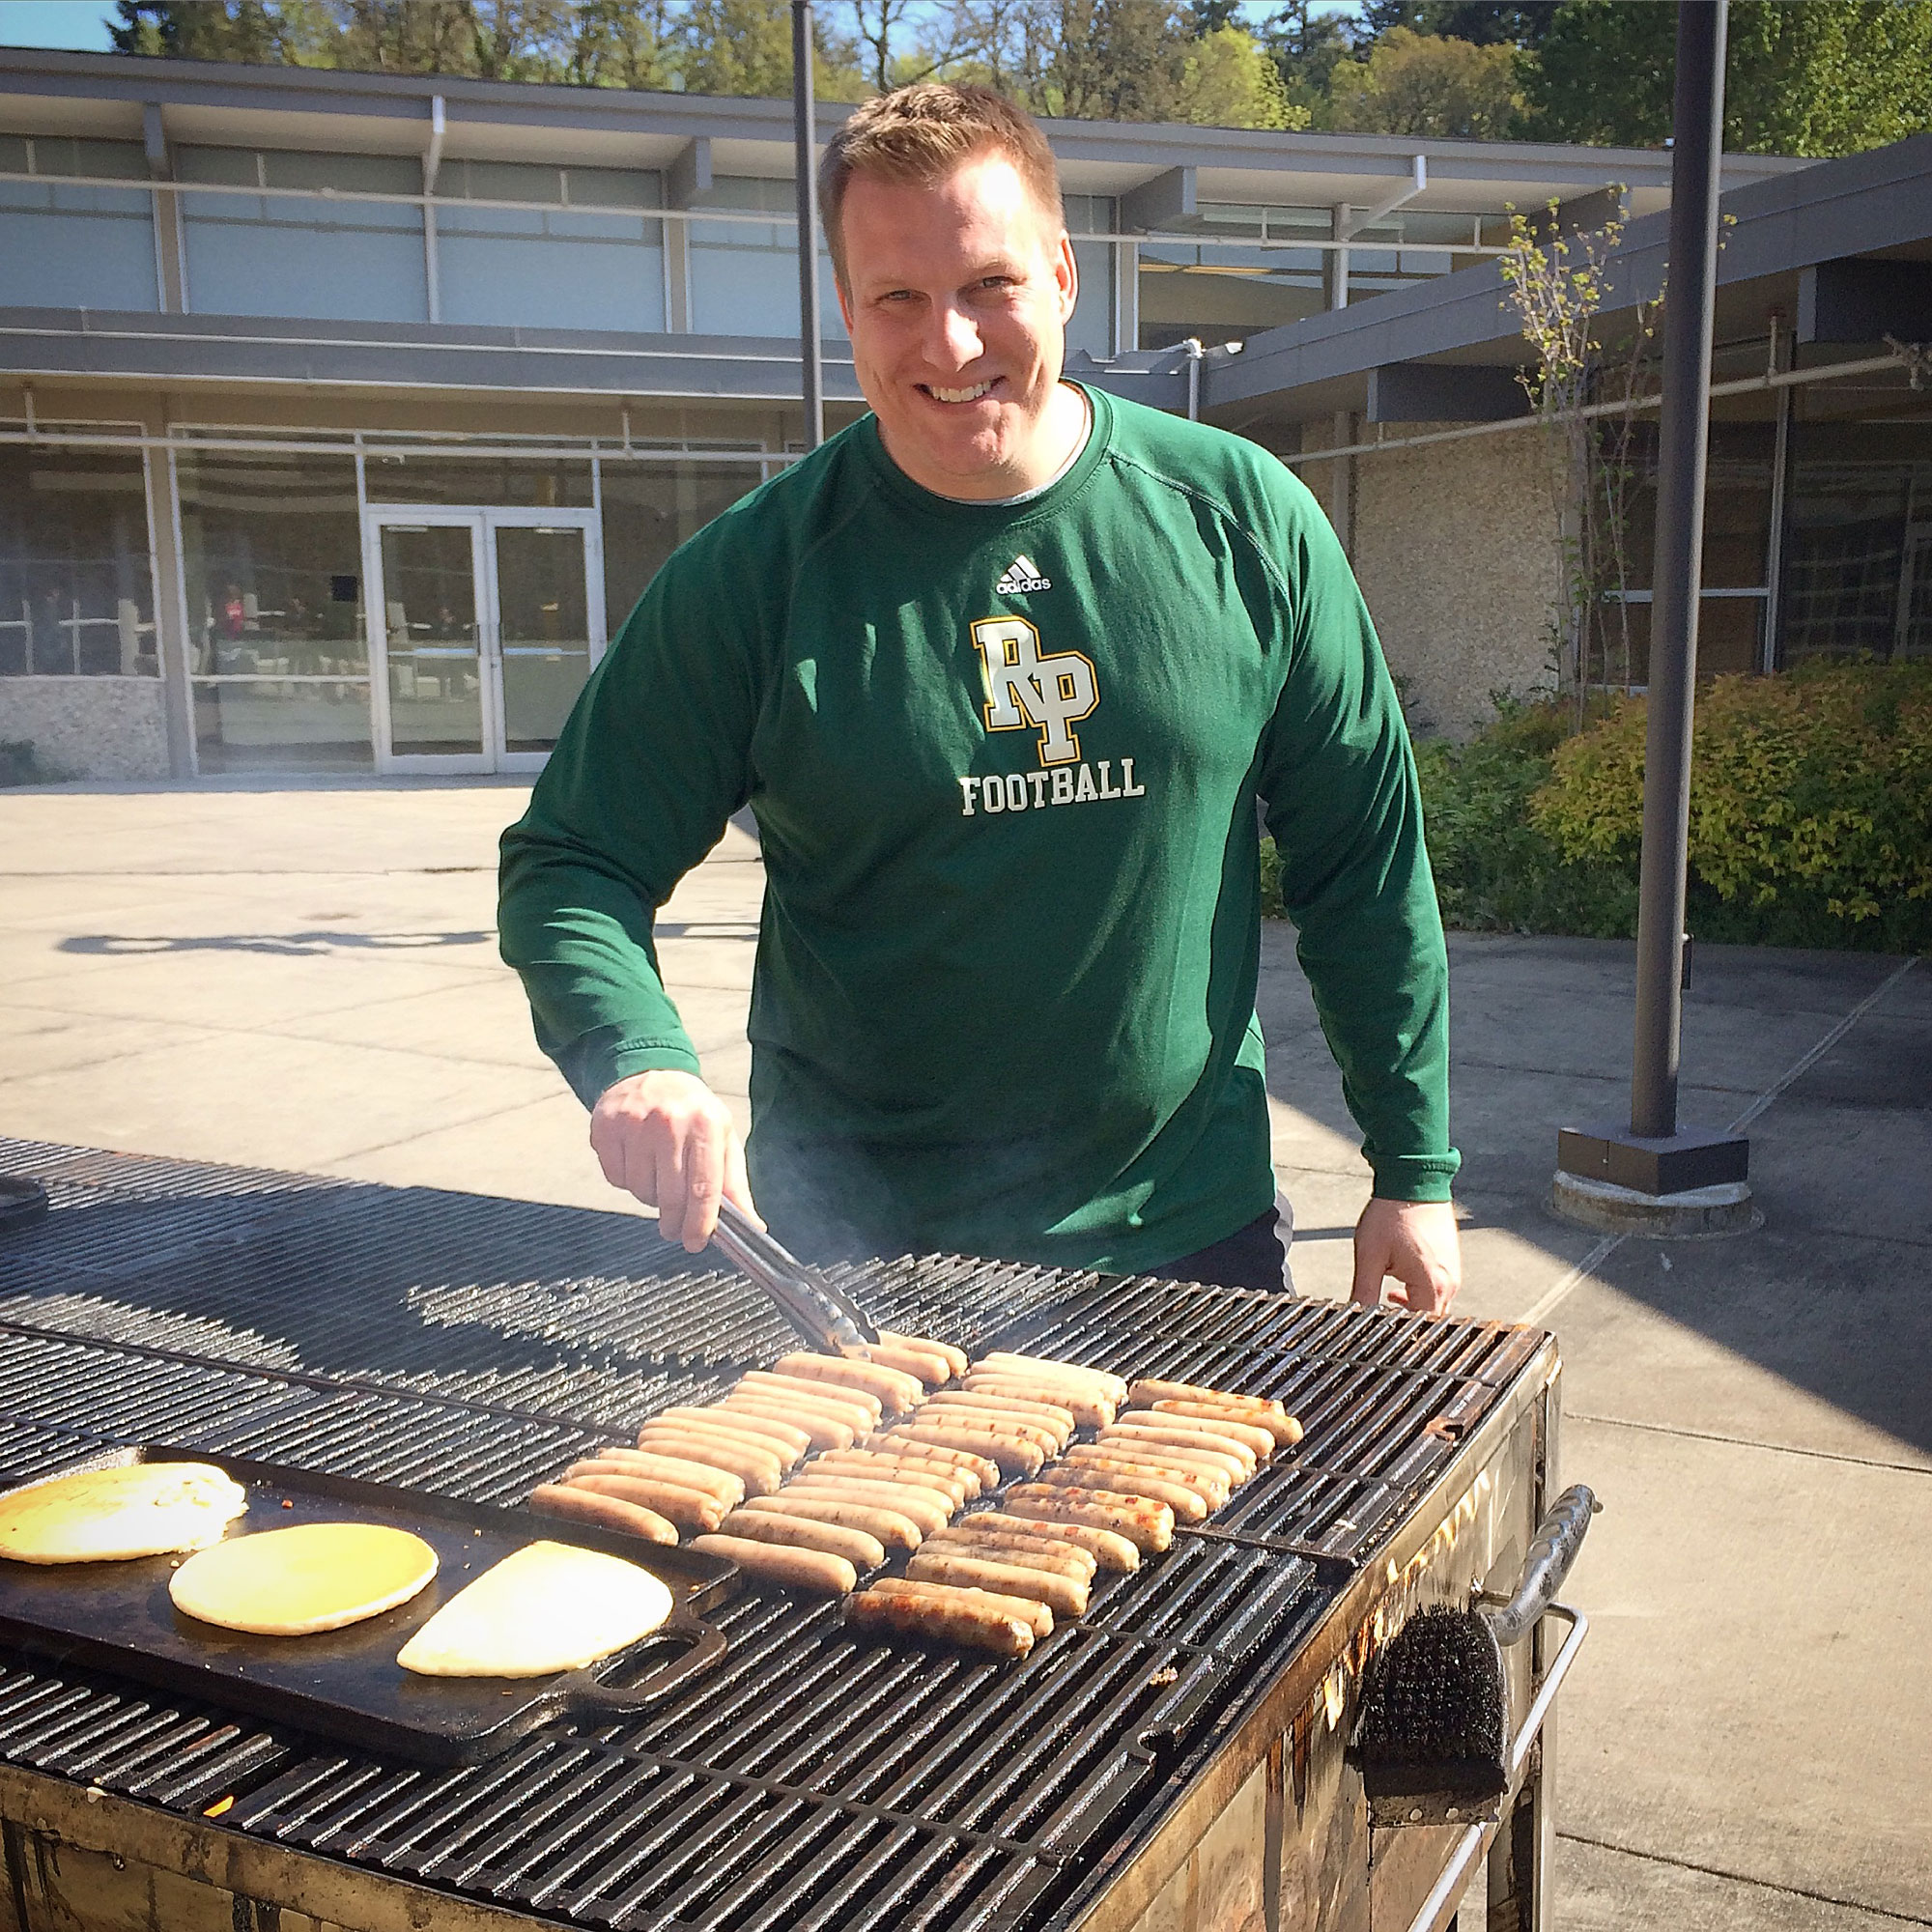 Coach Jacobs cooking sausages and pancakes on the BBQ grill.